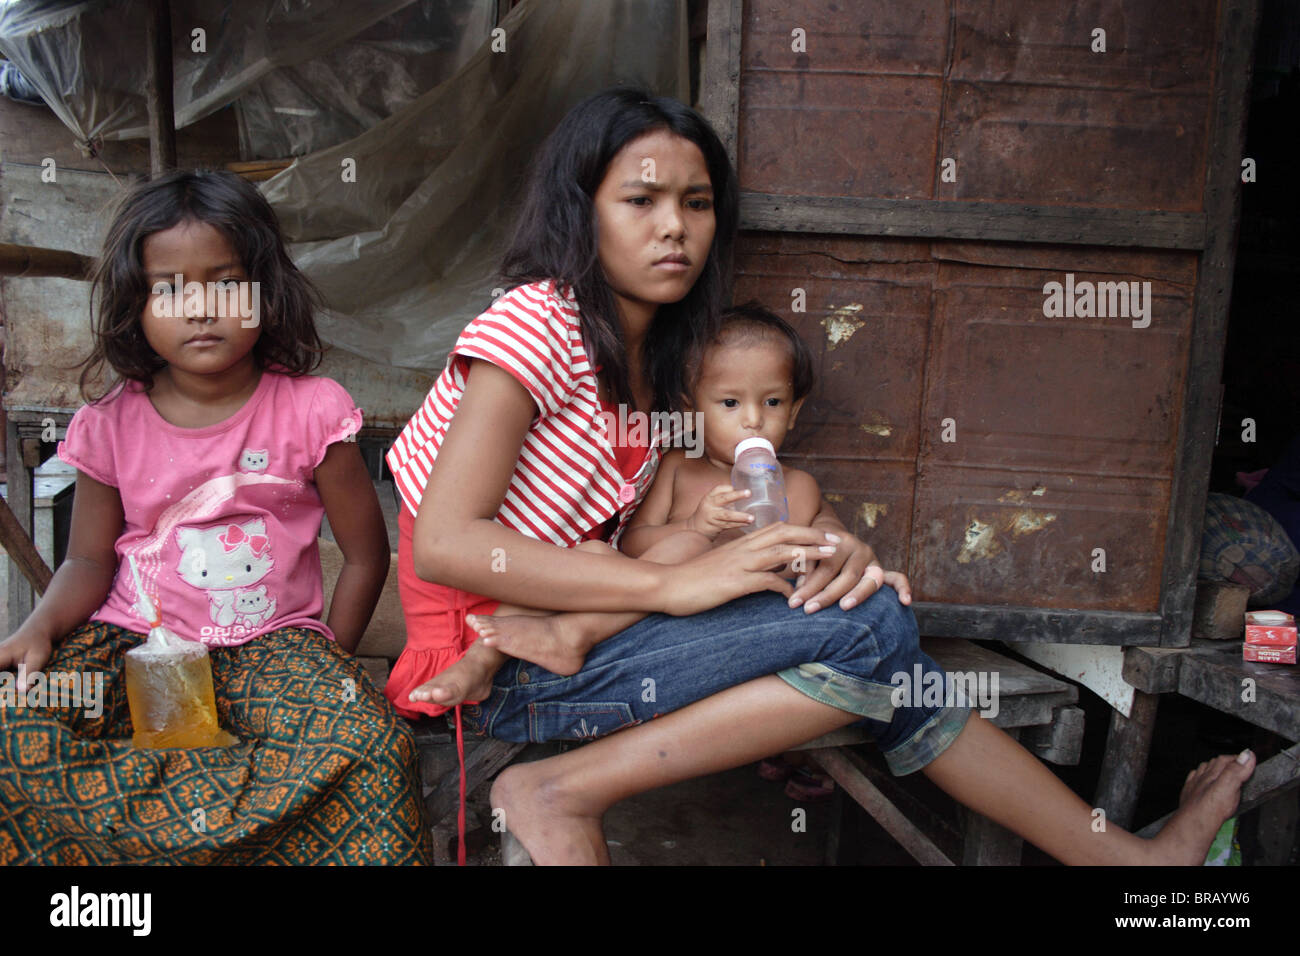 Küche Ficken A 14 Year Old Girl Sits With Her Siblings On The Porch Of